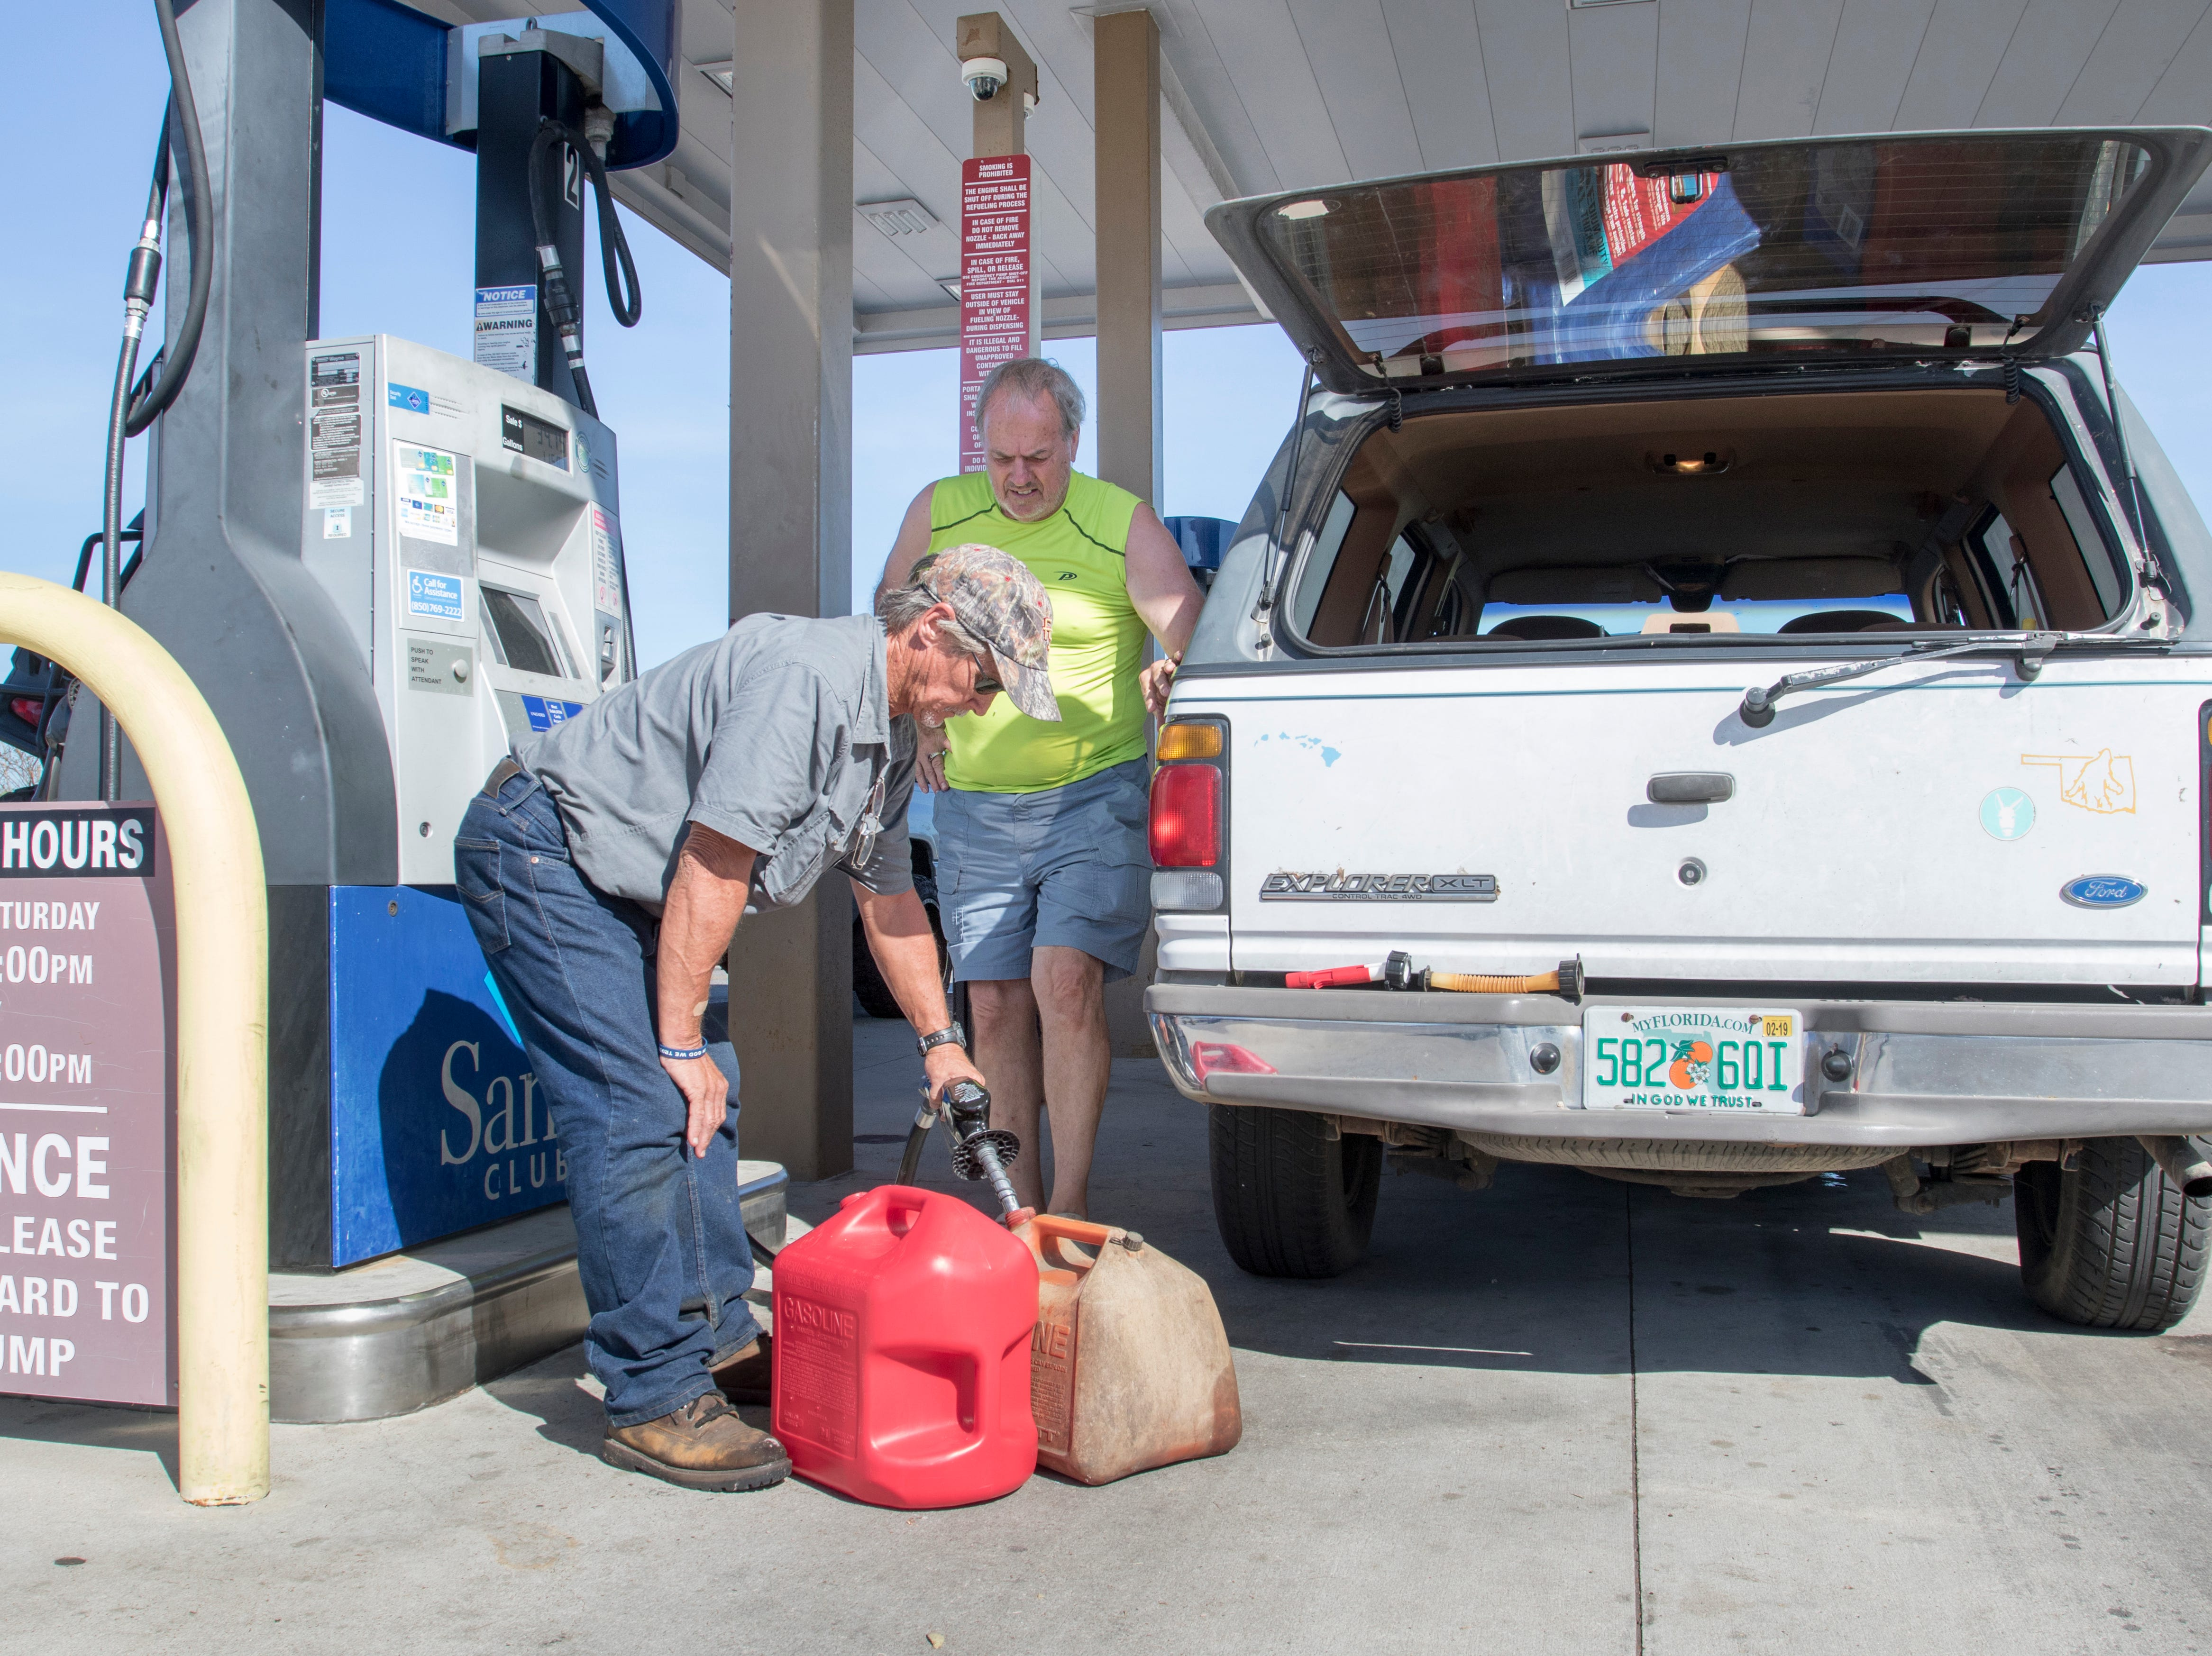 Thomas Johnson, left, and Larry Holland fill up gas cans at the Sam's Club on West 23rd Street after Hurricane Michael in Panama City, Florida on Wednesday, October 17, 2018.    Drivers are thrilled that their wait for gas has gone from up to 4 hours earlier in the week down to 30 to 45 minutes today.